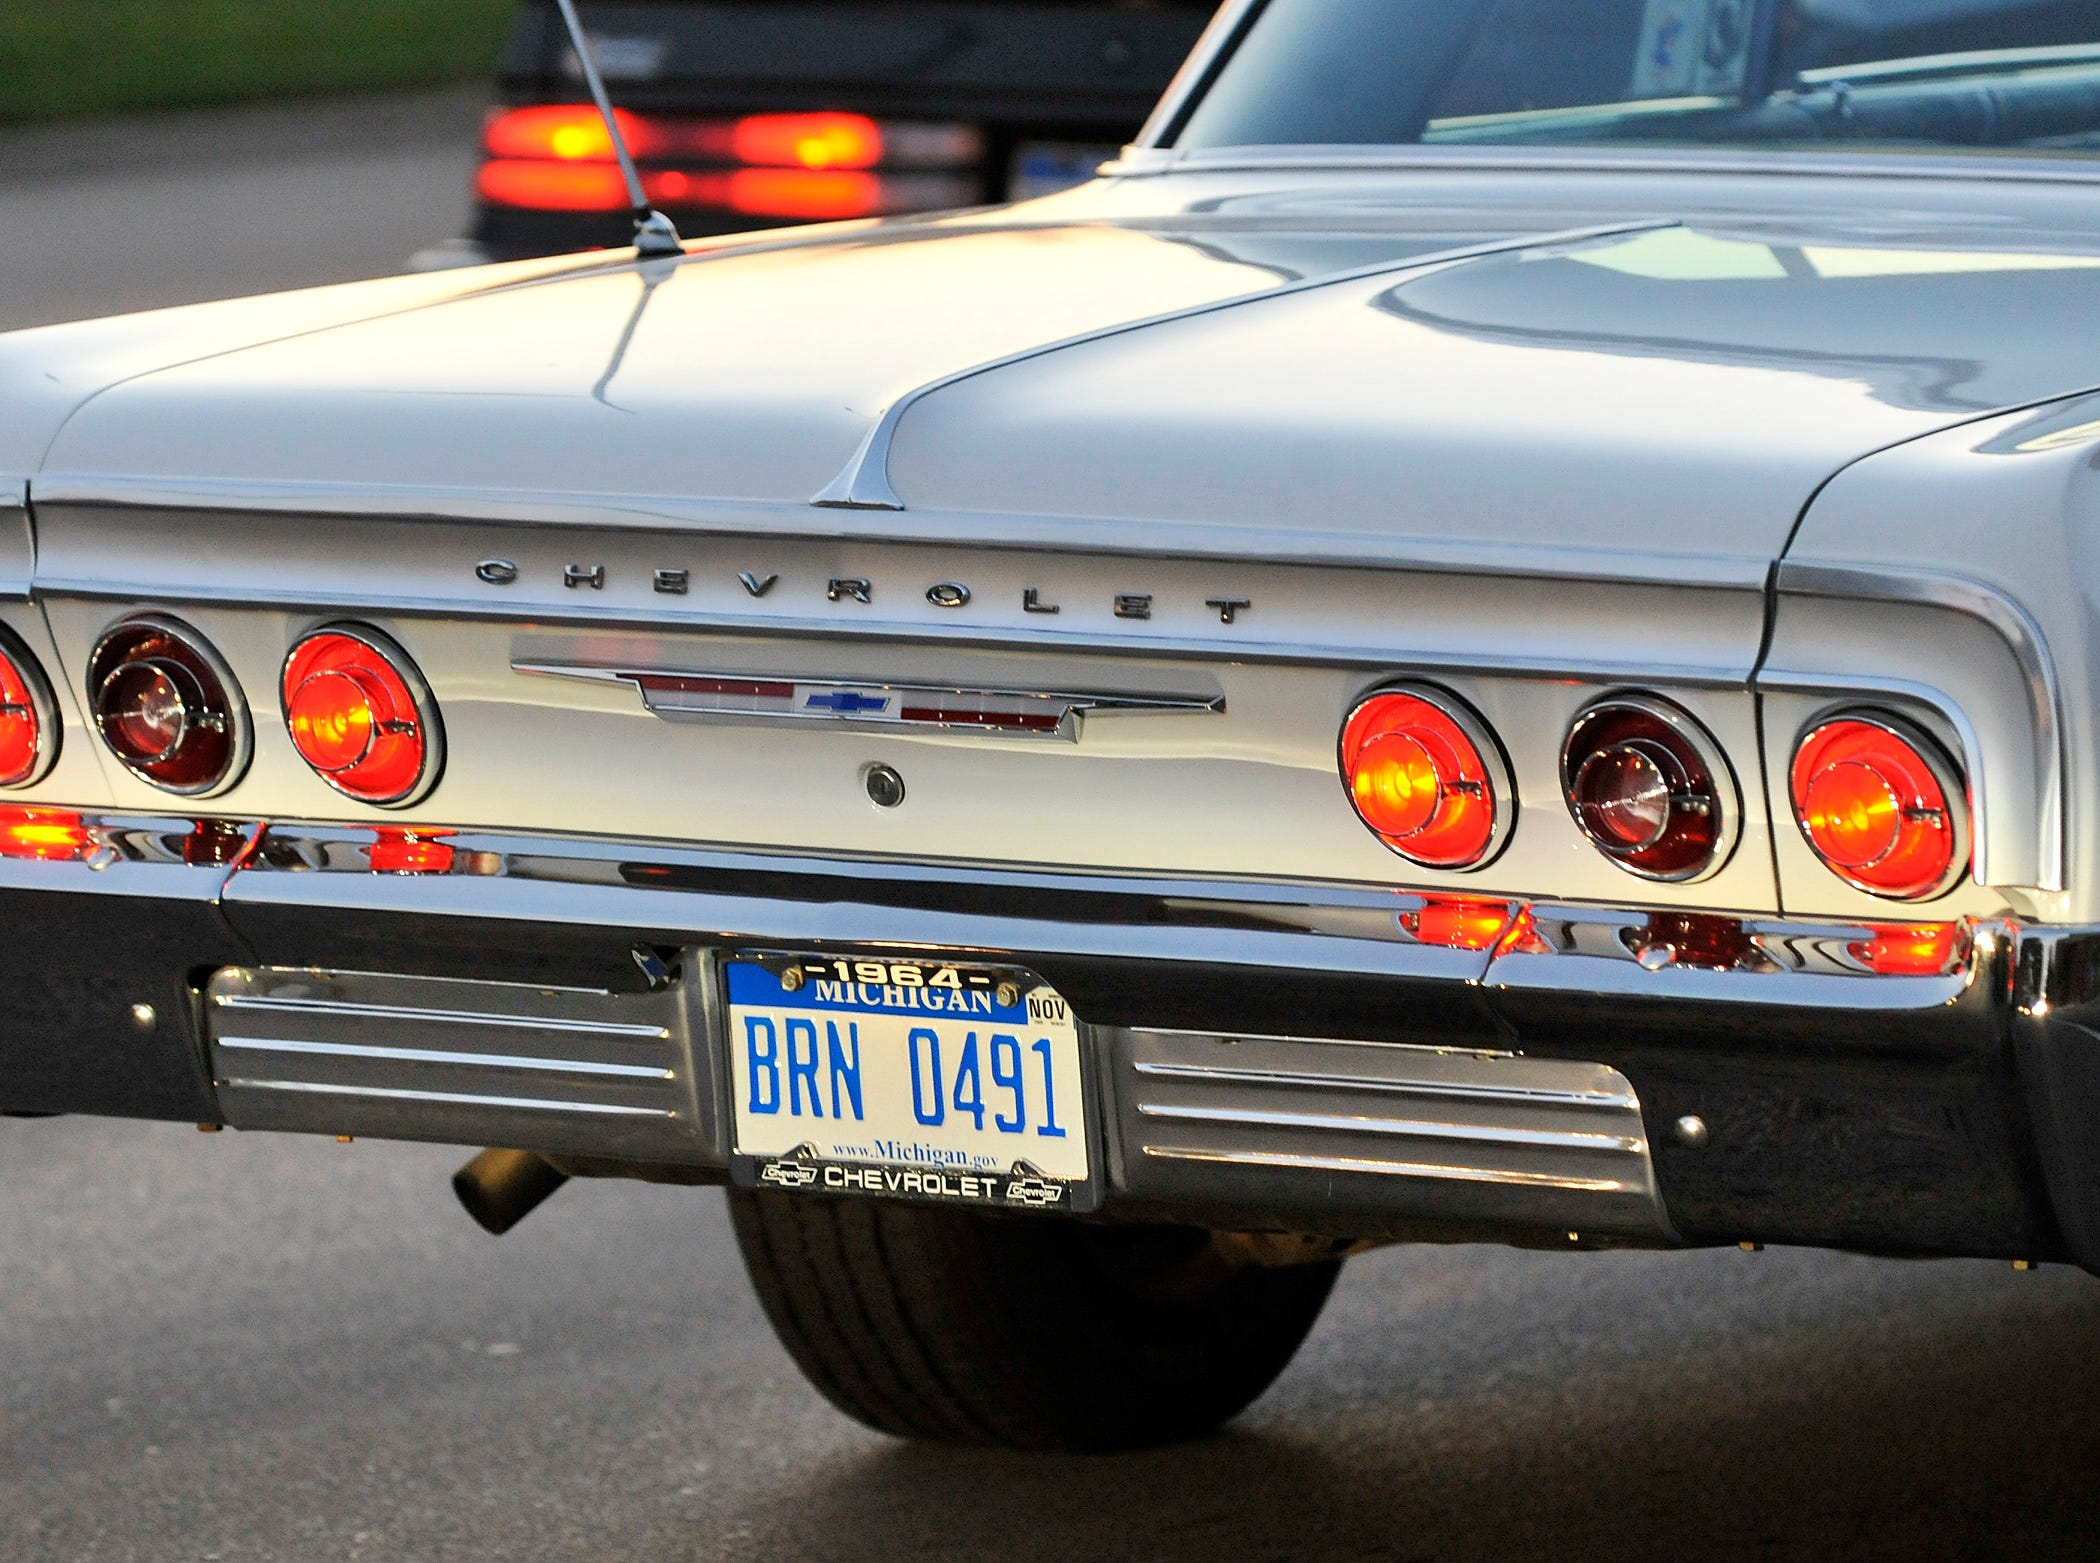 The taillights of a 1964 Chevrolet Impala on Woodward during the Dream Cruise, Aug. 14, 2009.